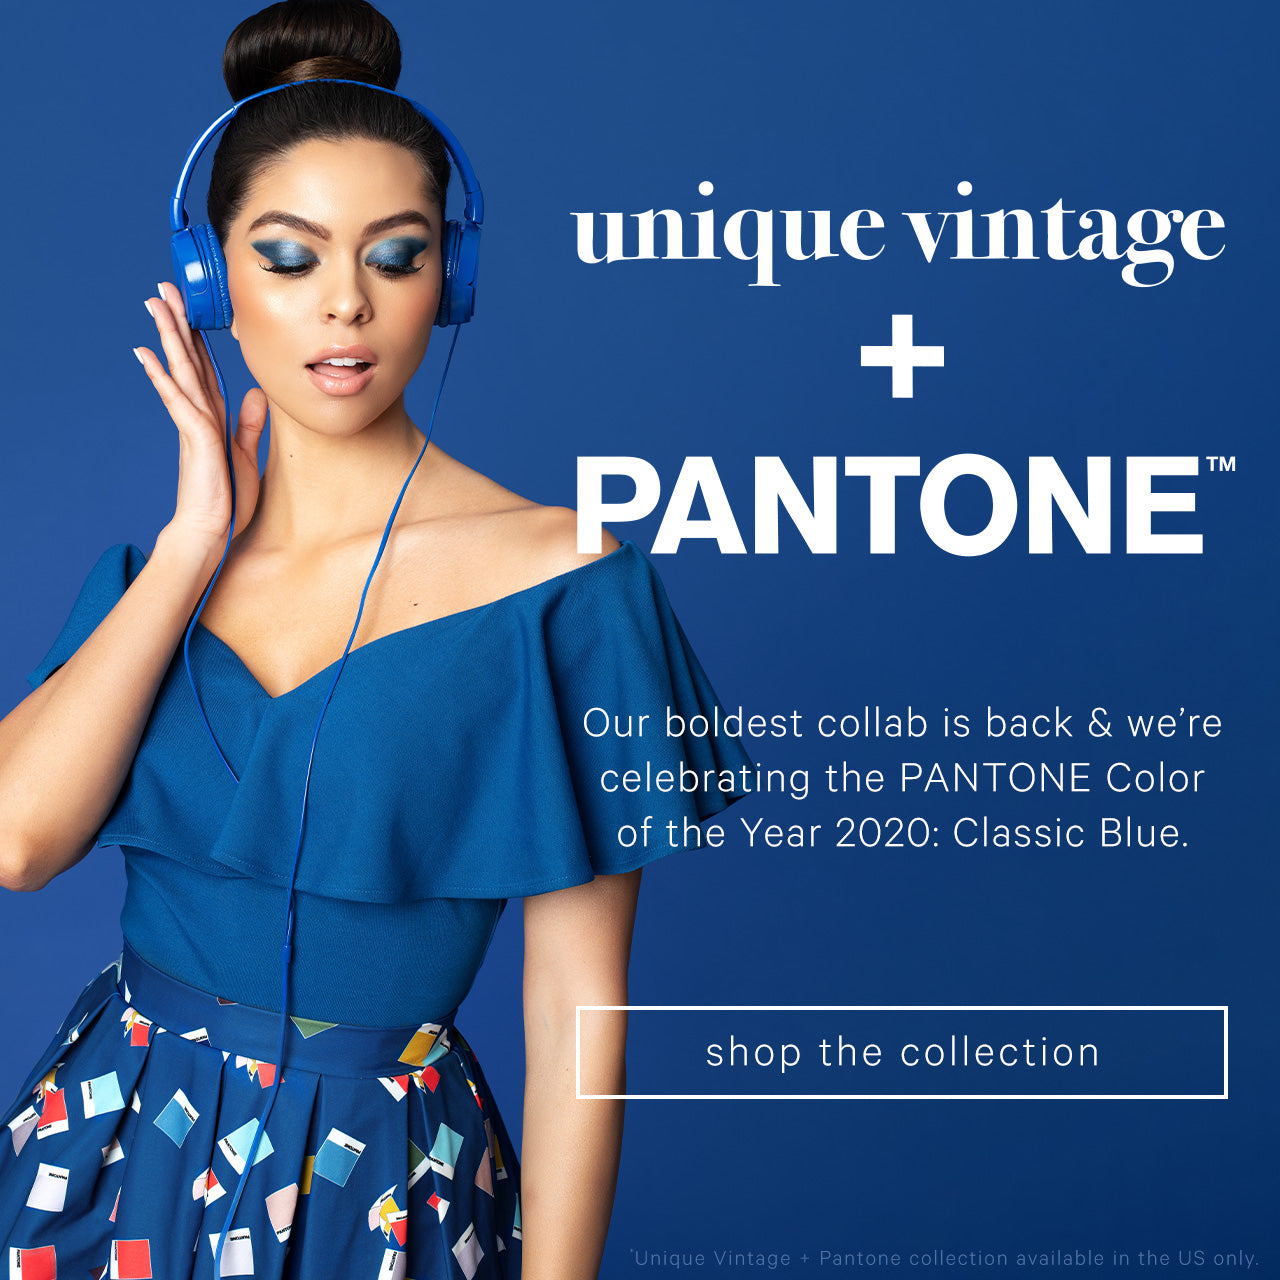 Unique Vintage — UV + Pantone Color of the Year: Classic Blue